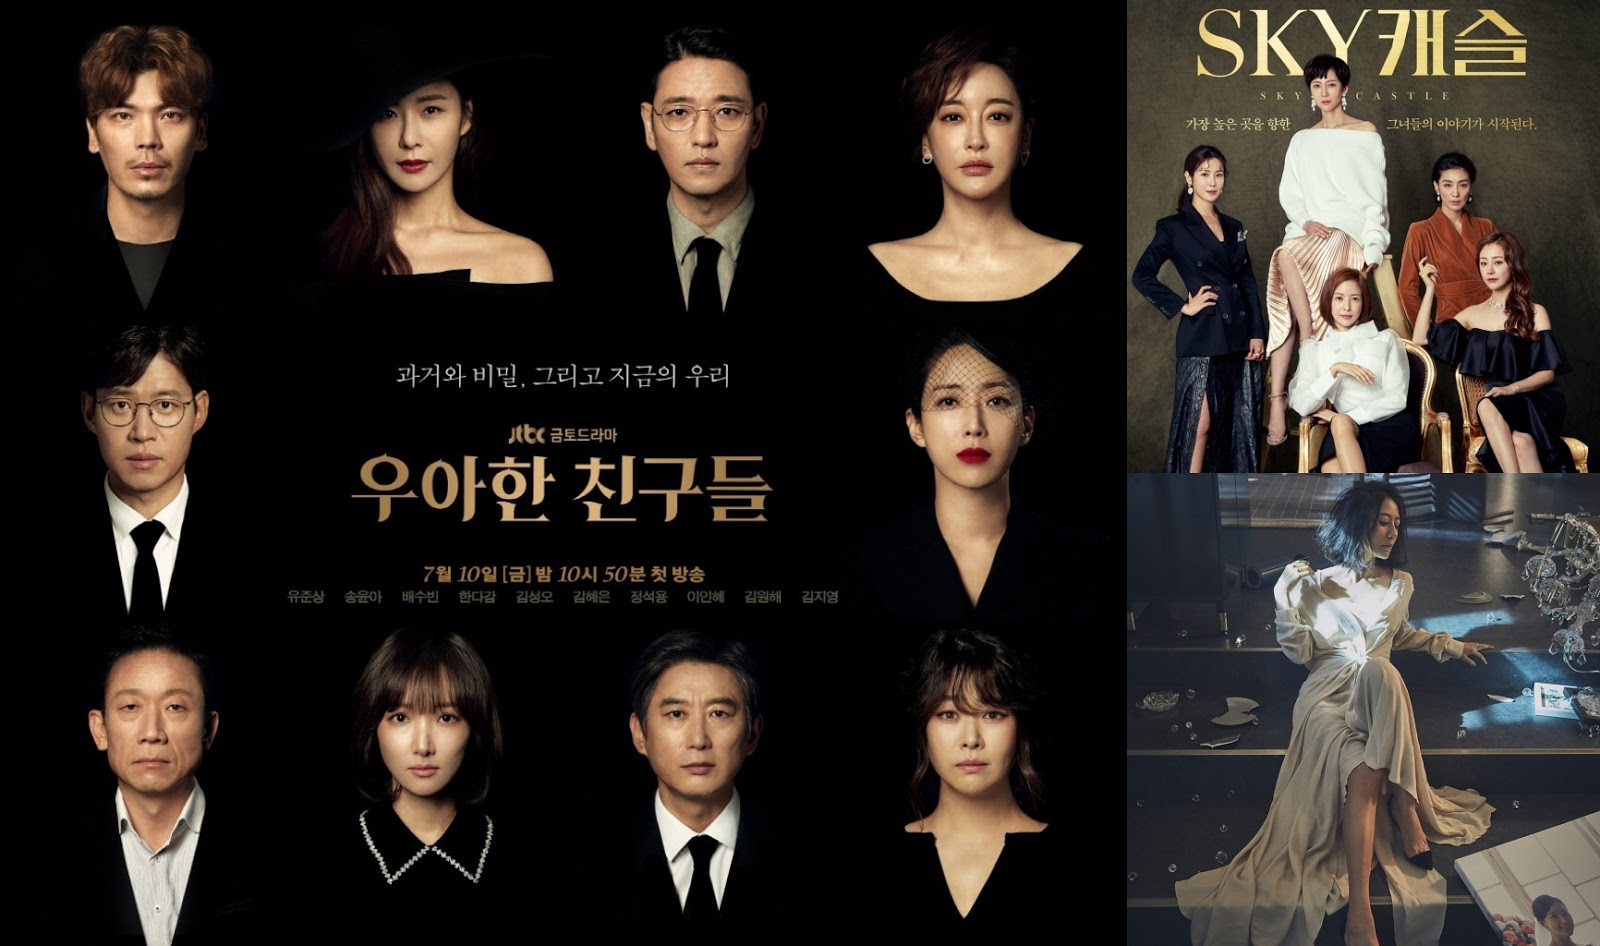 JTBC's New Drama 'Elegant Friends' Claimed to Continue the Success of 'Sky Castle' and 'The World of the Married'